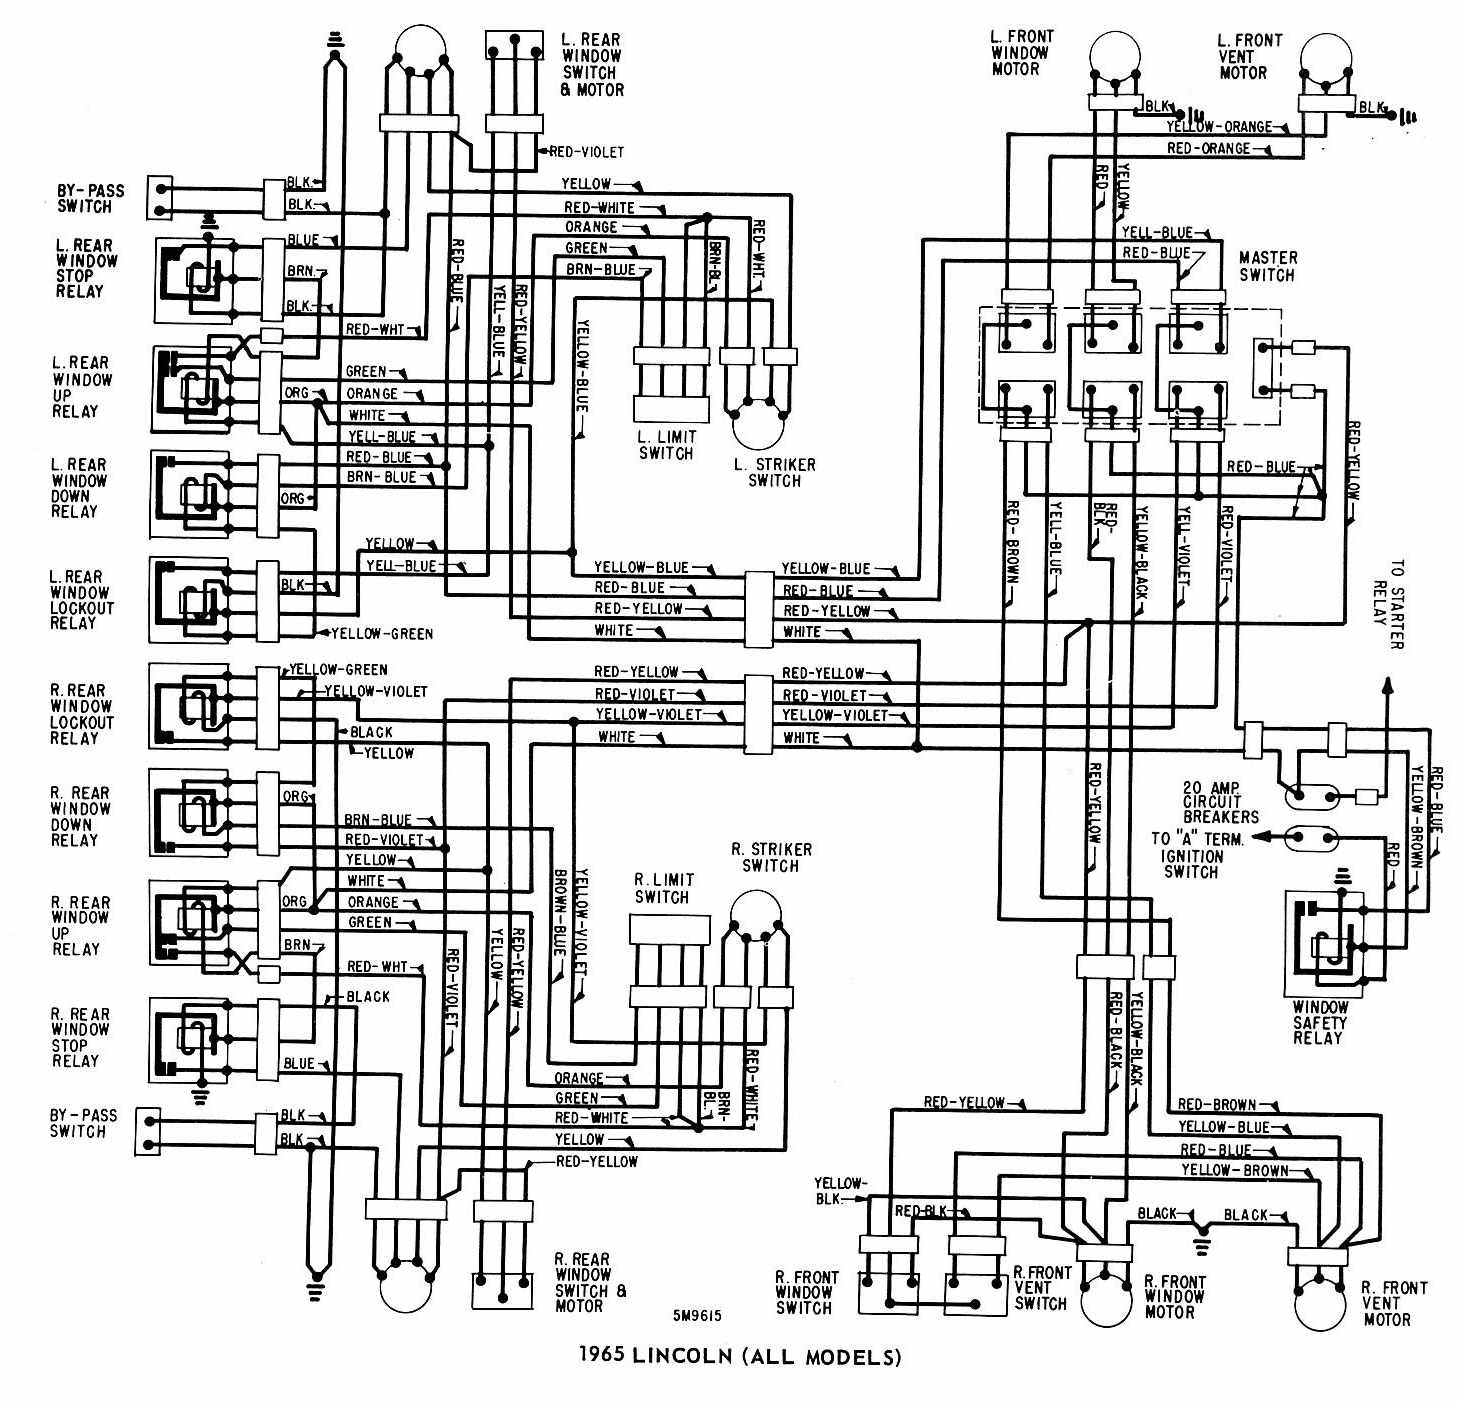 1964 Lincoln Continental Convertible Wiring Diagram 989 in addition Lincoln All Models 1965 Windows Wiring furthermore Watch furthermore Discussion C3791 ds476886 likewise 2002 Land Rover Defender Audio System Circuit Wiring Diagram. on 2000 cadillac deville rear window wiring schematics